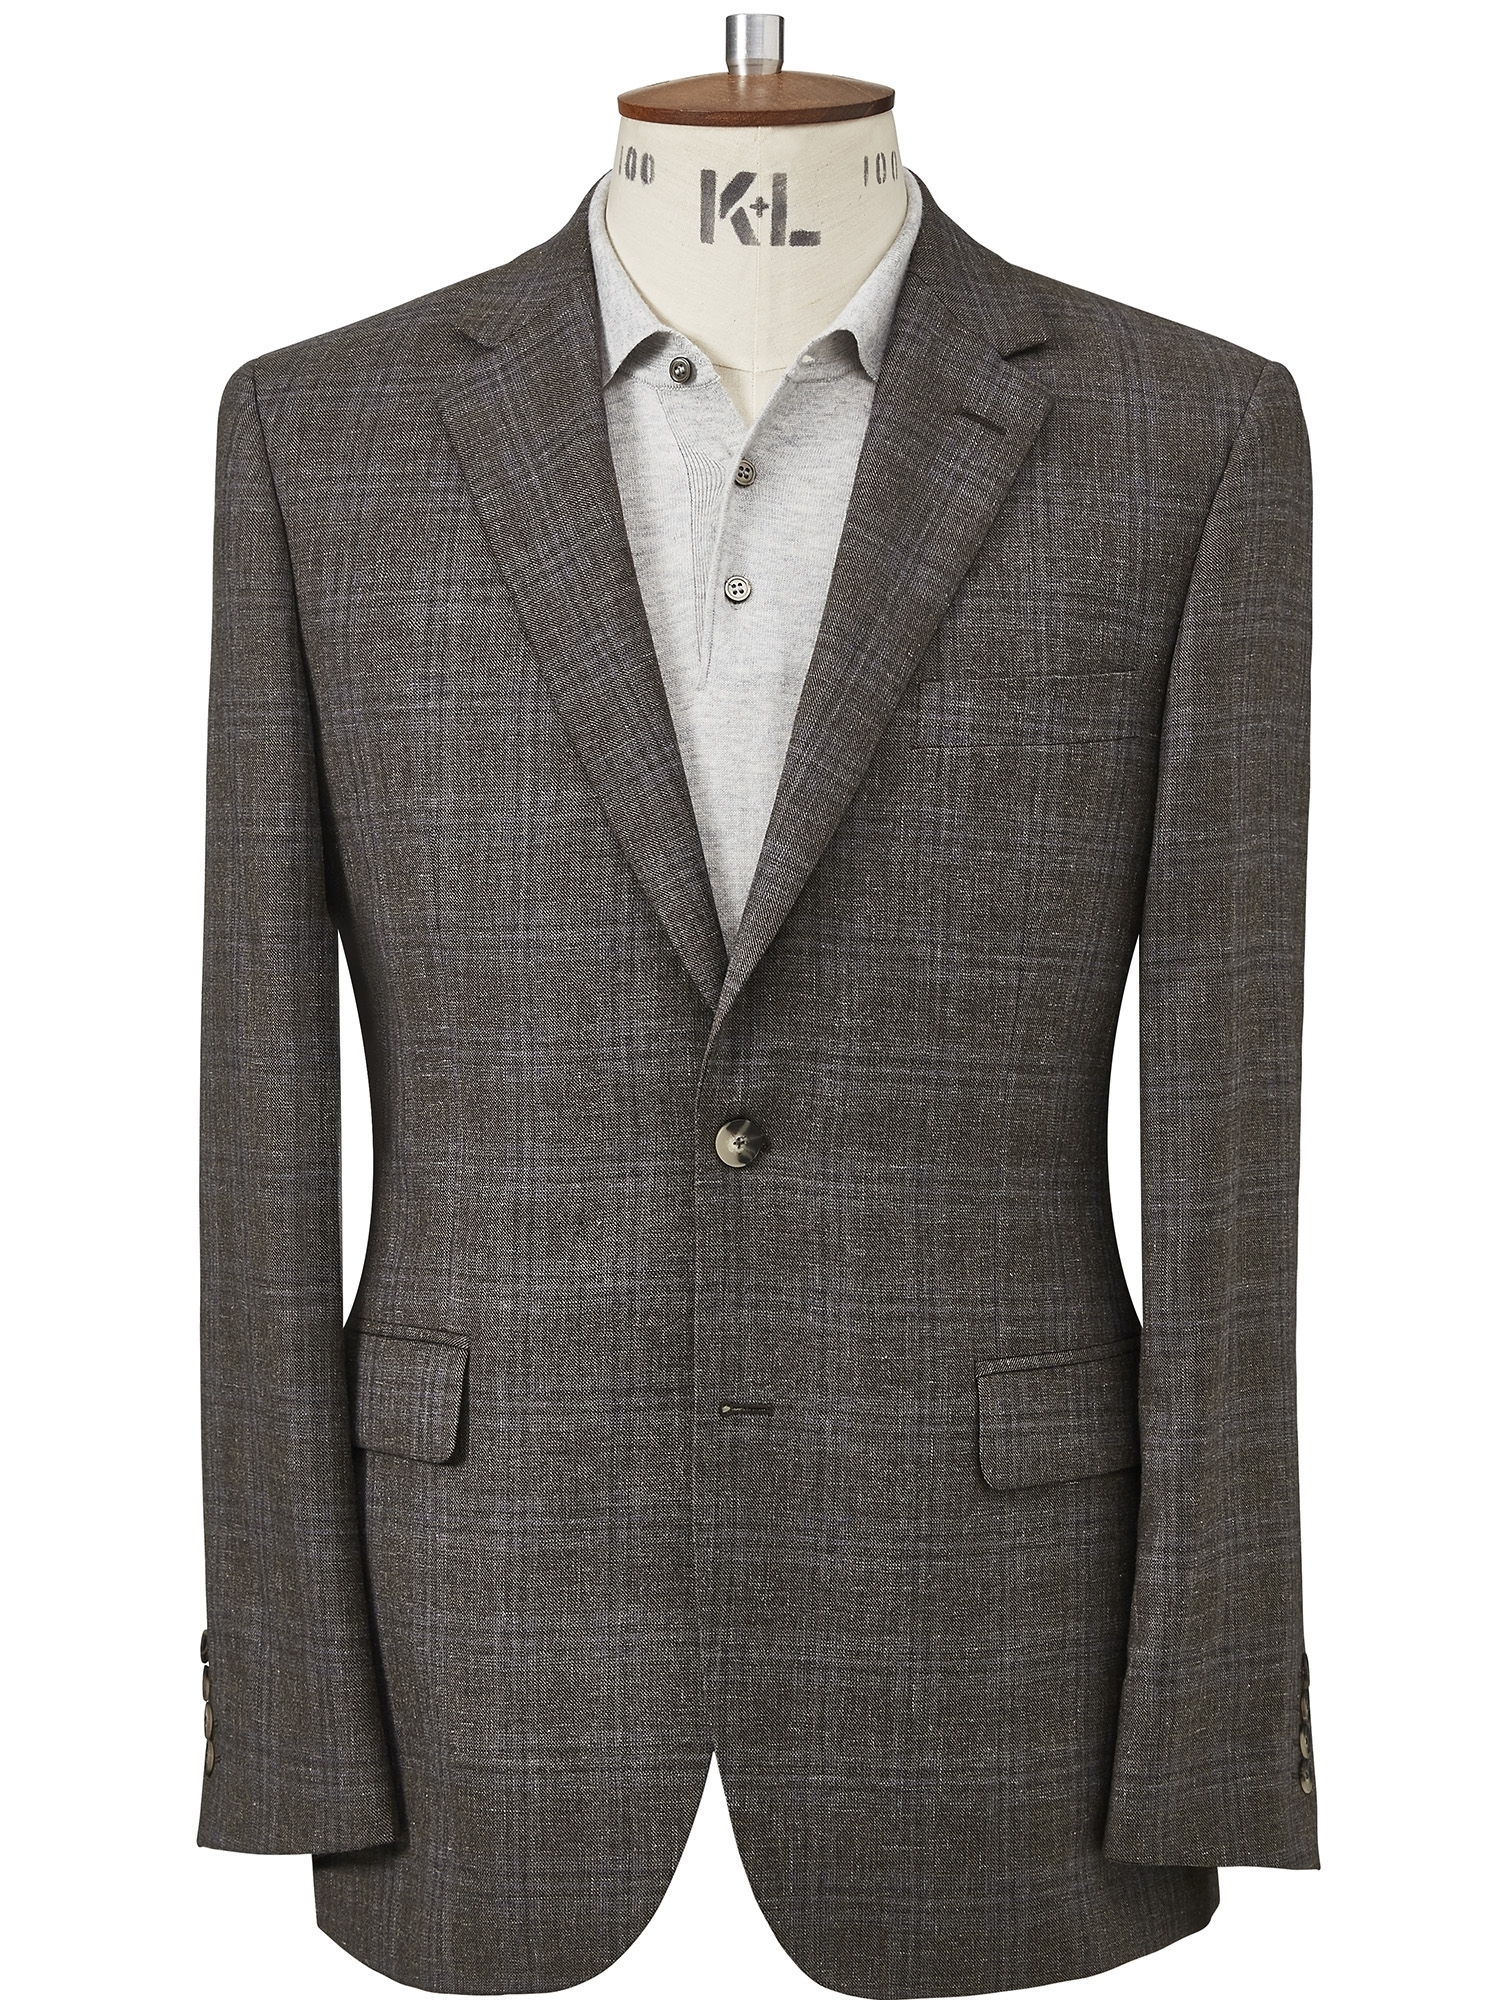 CHESTER BY CHESTER BARRIE | Chester By Chester Barrie Wool Silk And Linen Check Jacket | Goxip